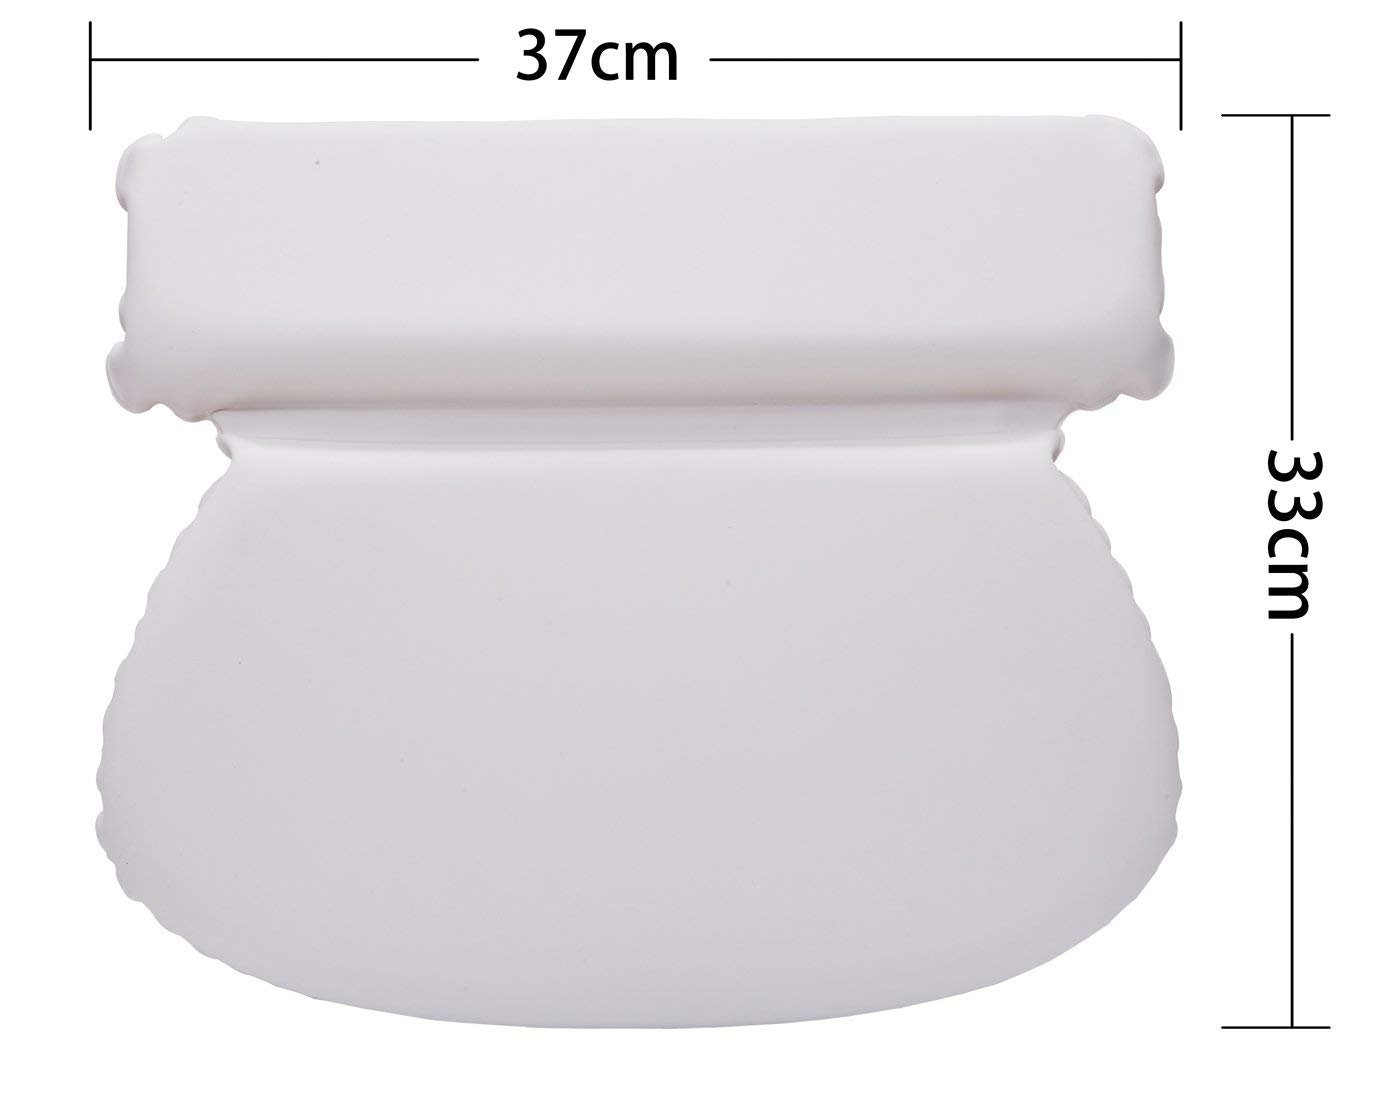 Luxury Spa Bath Pillow with Head Neck Shoulder and Back Support by Bossjoy (Image #3)